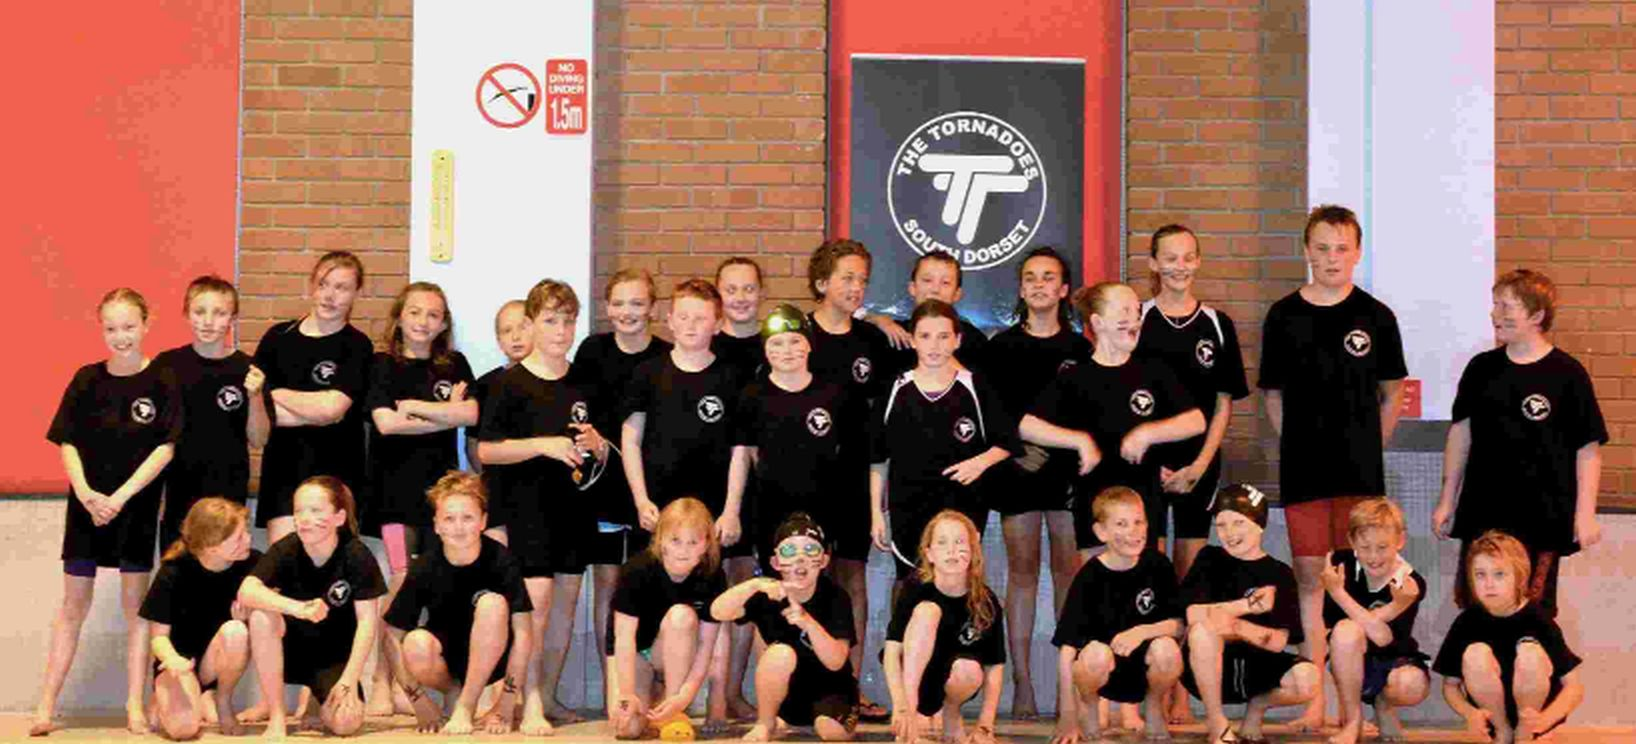 GREAT EFFORT: The Tornadoes of South Dorset at the Southern Junior League gala in Weymouth